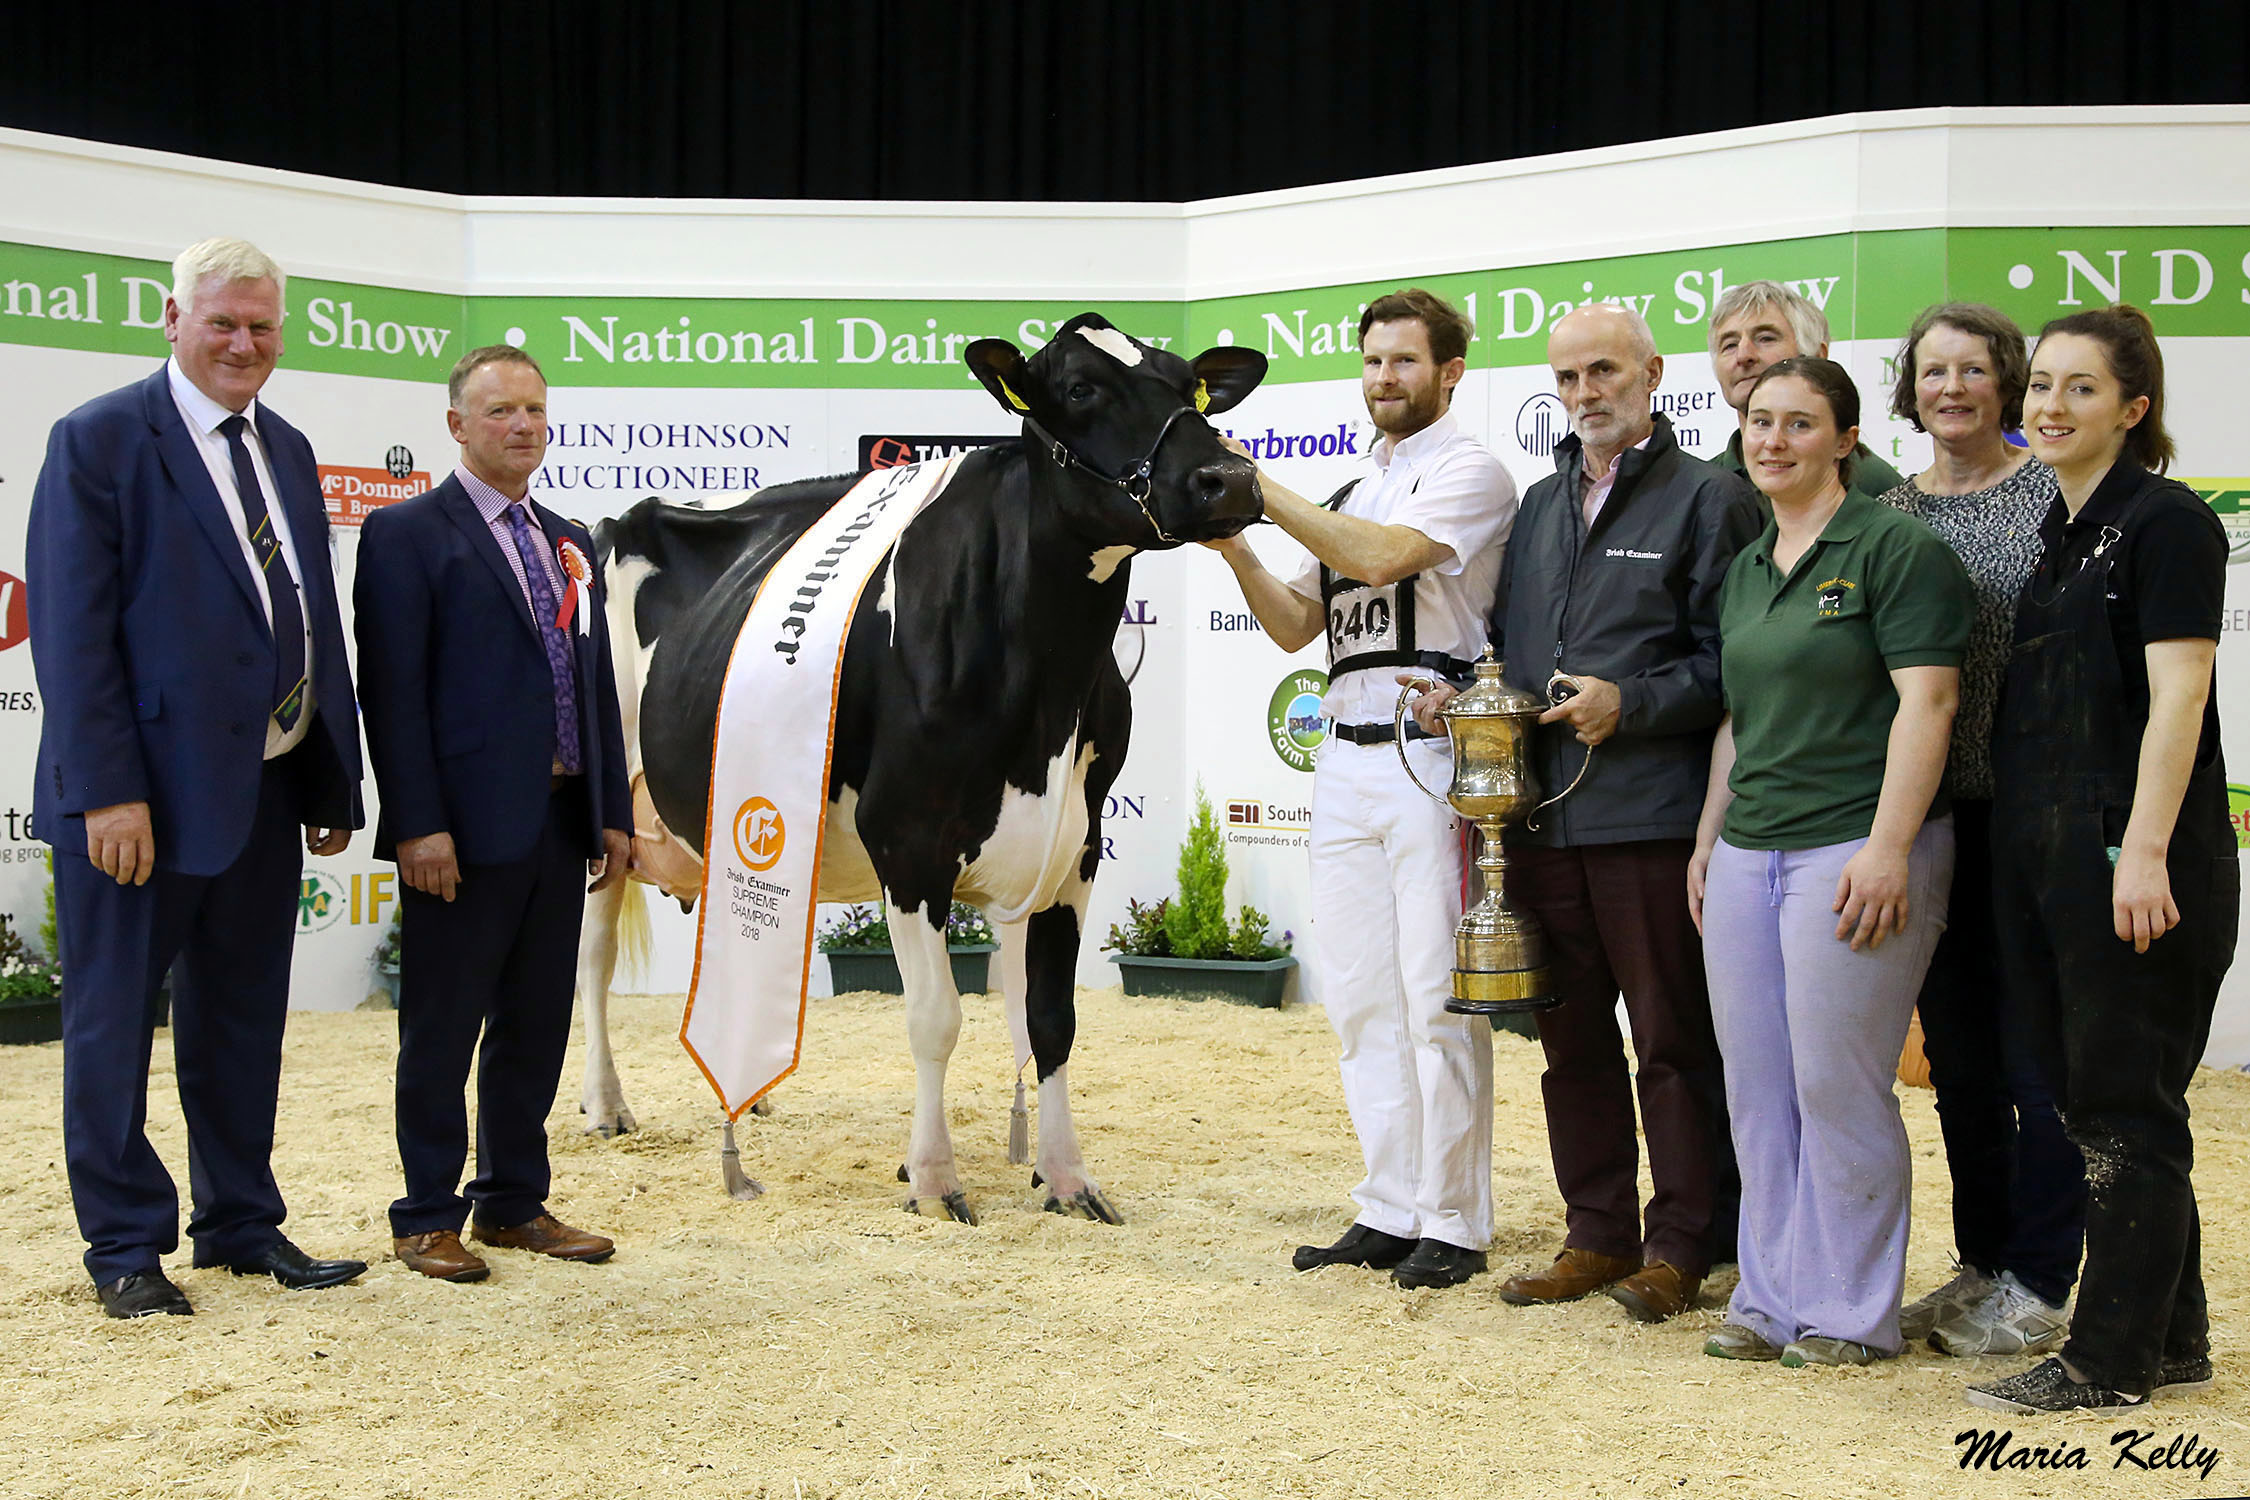 20/10/18, John Kirby Director of National Dairy Show, Edward Griffiths, Judge with the Irish Examiner National Dairy Show 2018 Supreme Champion Milliedale Dusk Rhapsody, owned by Donal & Kathleen Neville, pictured with their family Thomas, Ann and Catriona and sponsor Stephen Cadogan, Irish Examiner. Photo: Maria Kelly